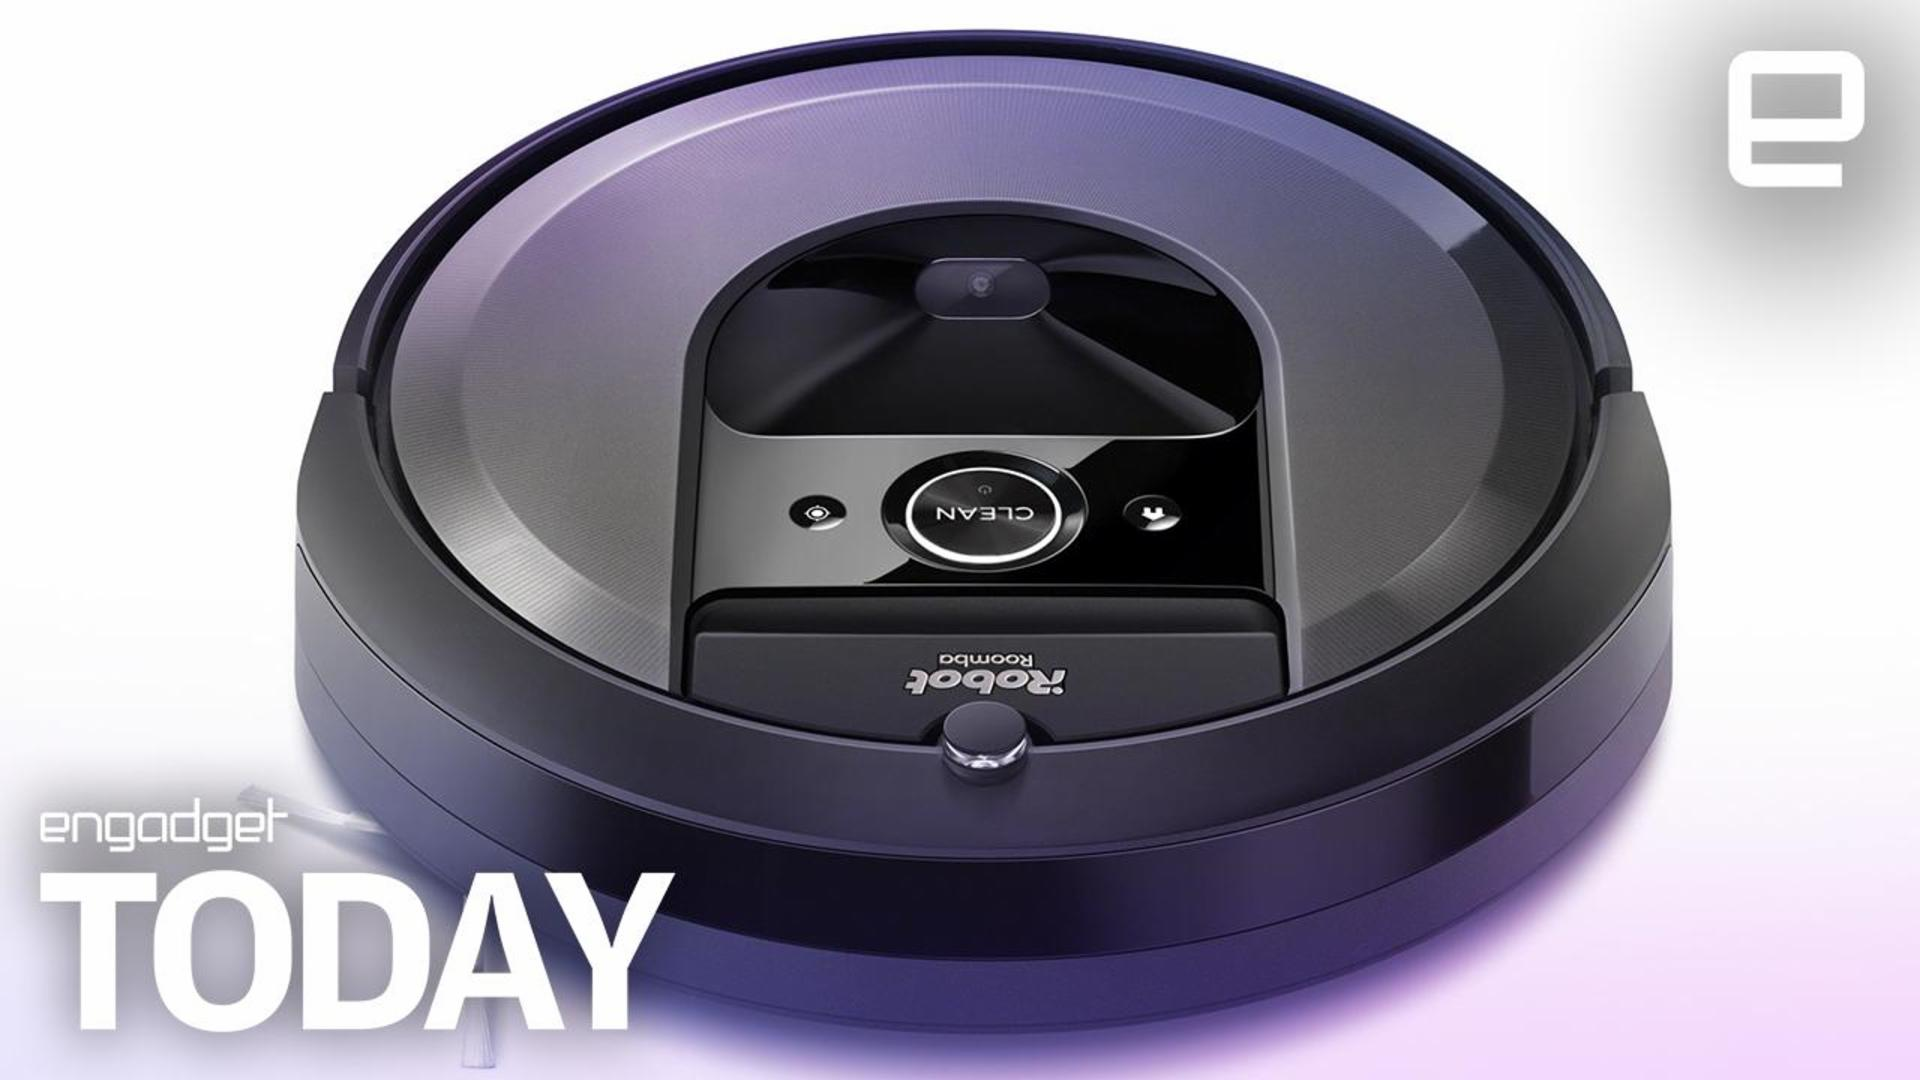 There's finally a Roomba that can empty itself